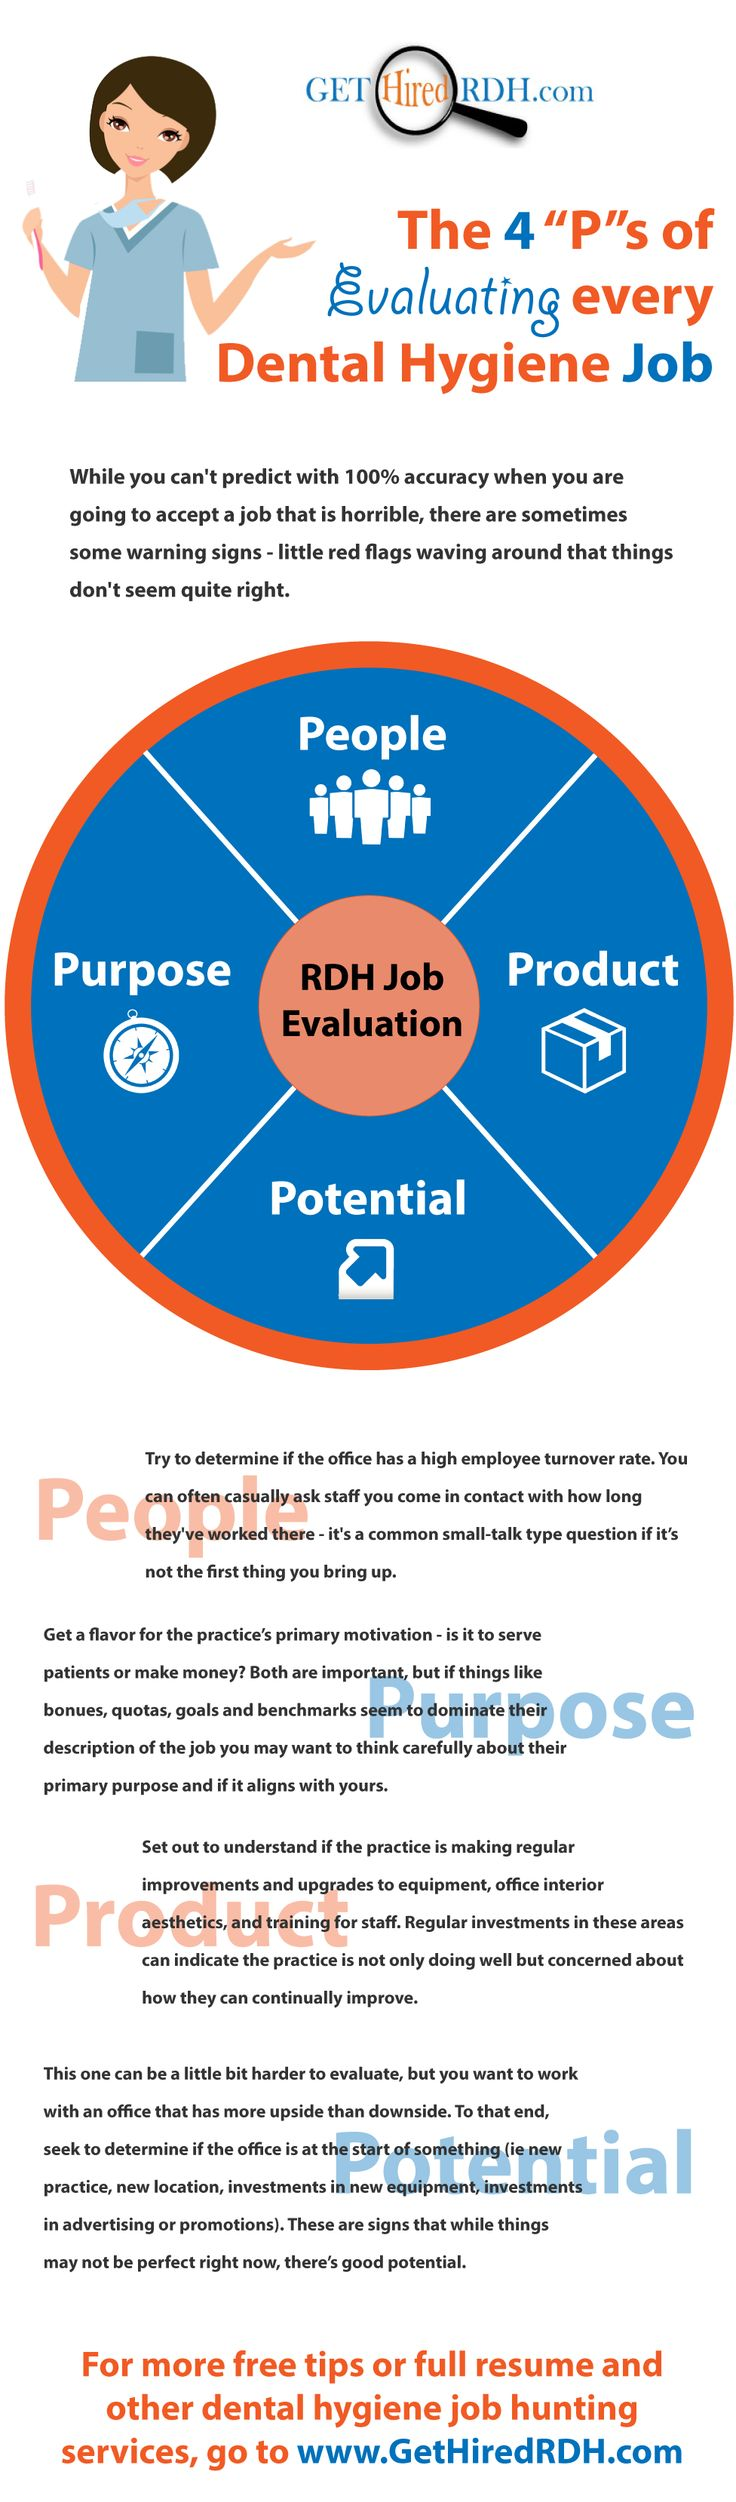 Find This Pin And More On Rdh Job Hunting Tips